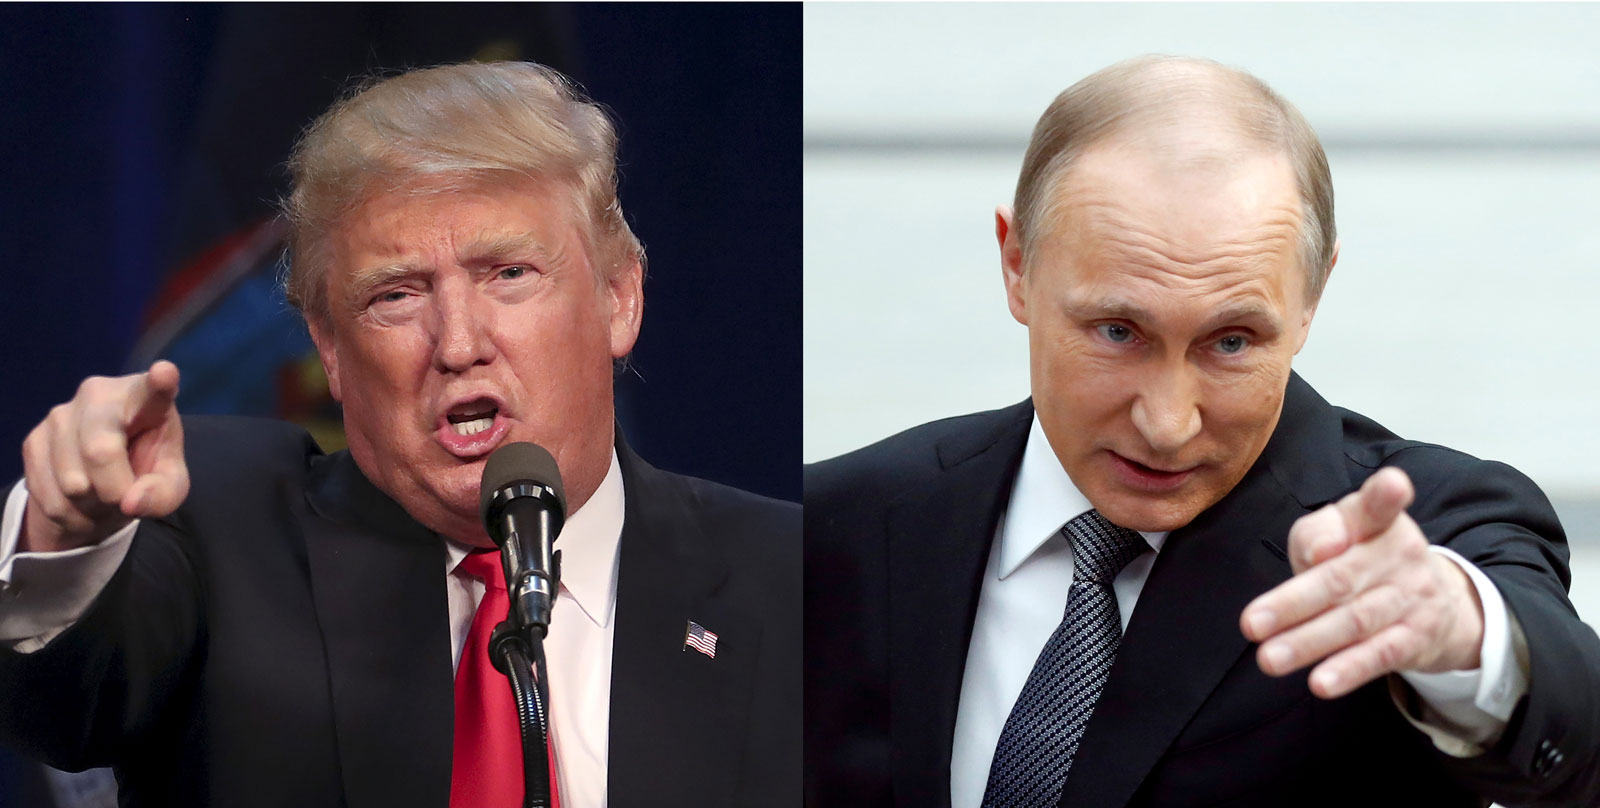 Donald Trump at a campaign rally, Syracuse, New York, April 16, 2016; Vladimir Putin at a meeting with journalists, Moscow, Russia, April 14, 2016